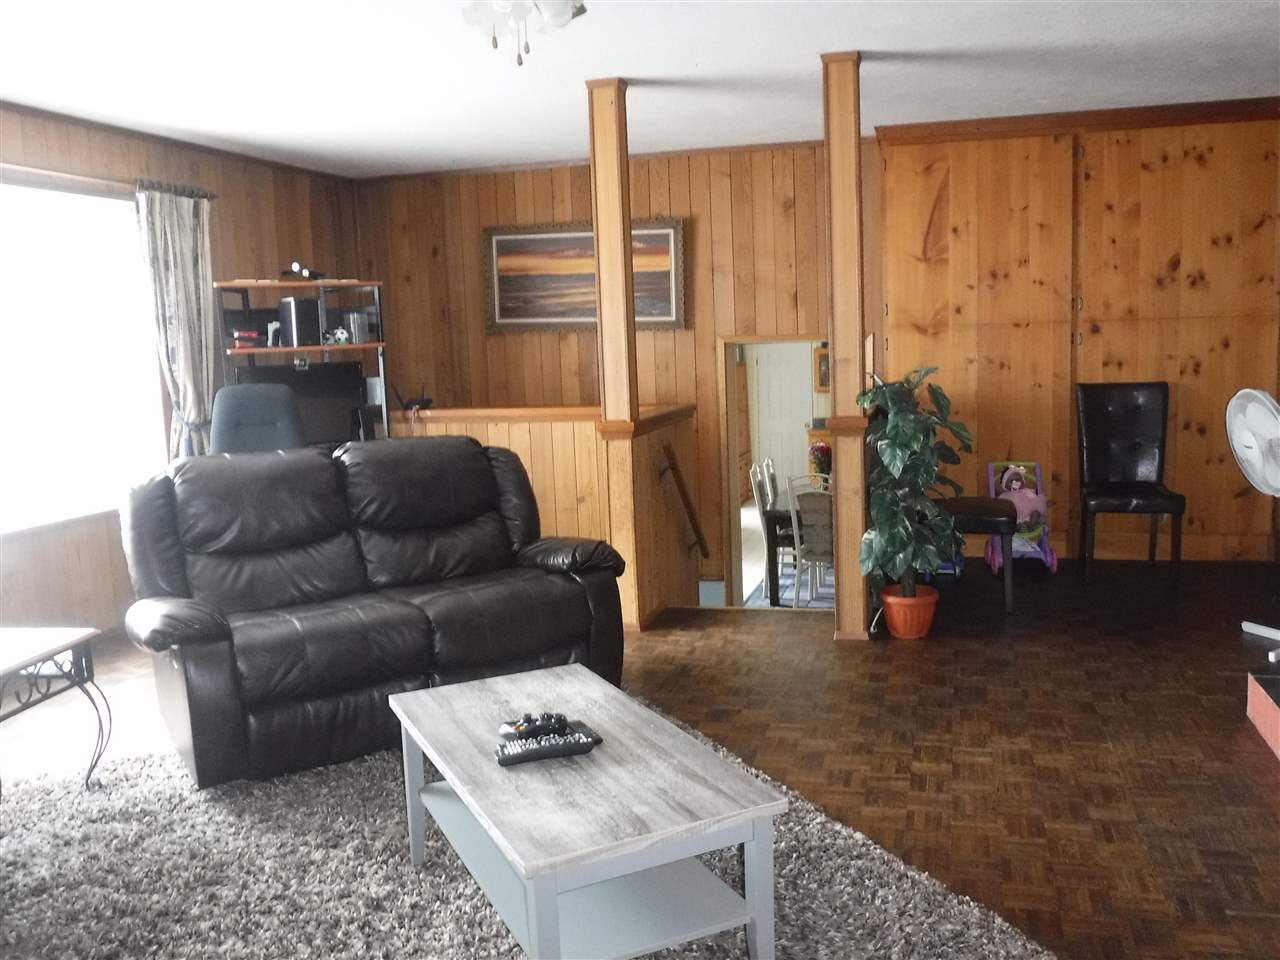 Photo 13: Photos: 1621 MACKENZIEY 20 Highway in Bella Coola: Bella Coola/Hagensborg House for sale (Williams Lake (Zone 27))  : MLS®# R2386428